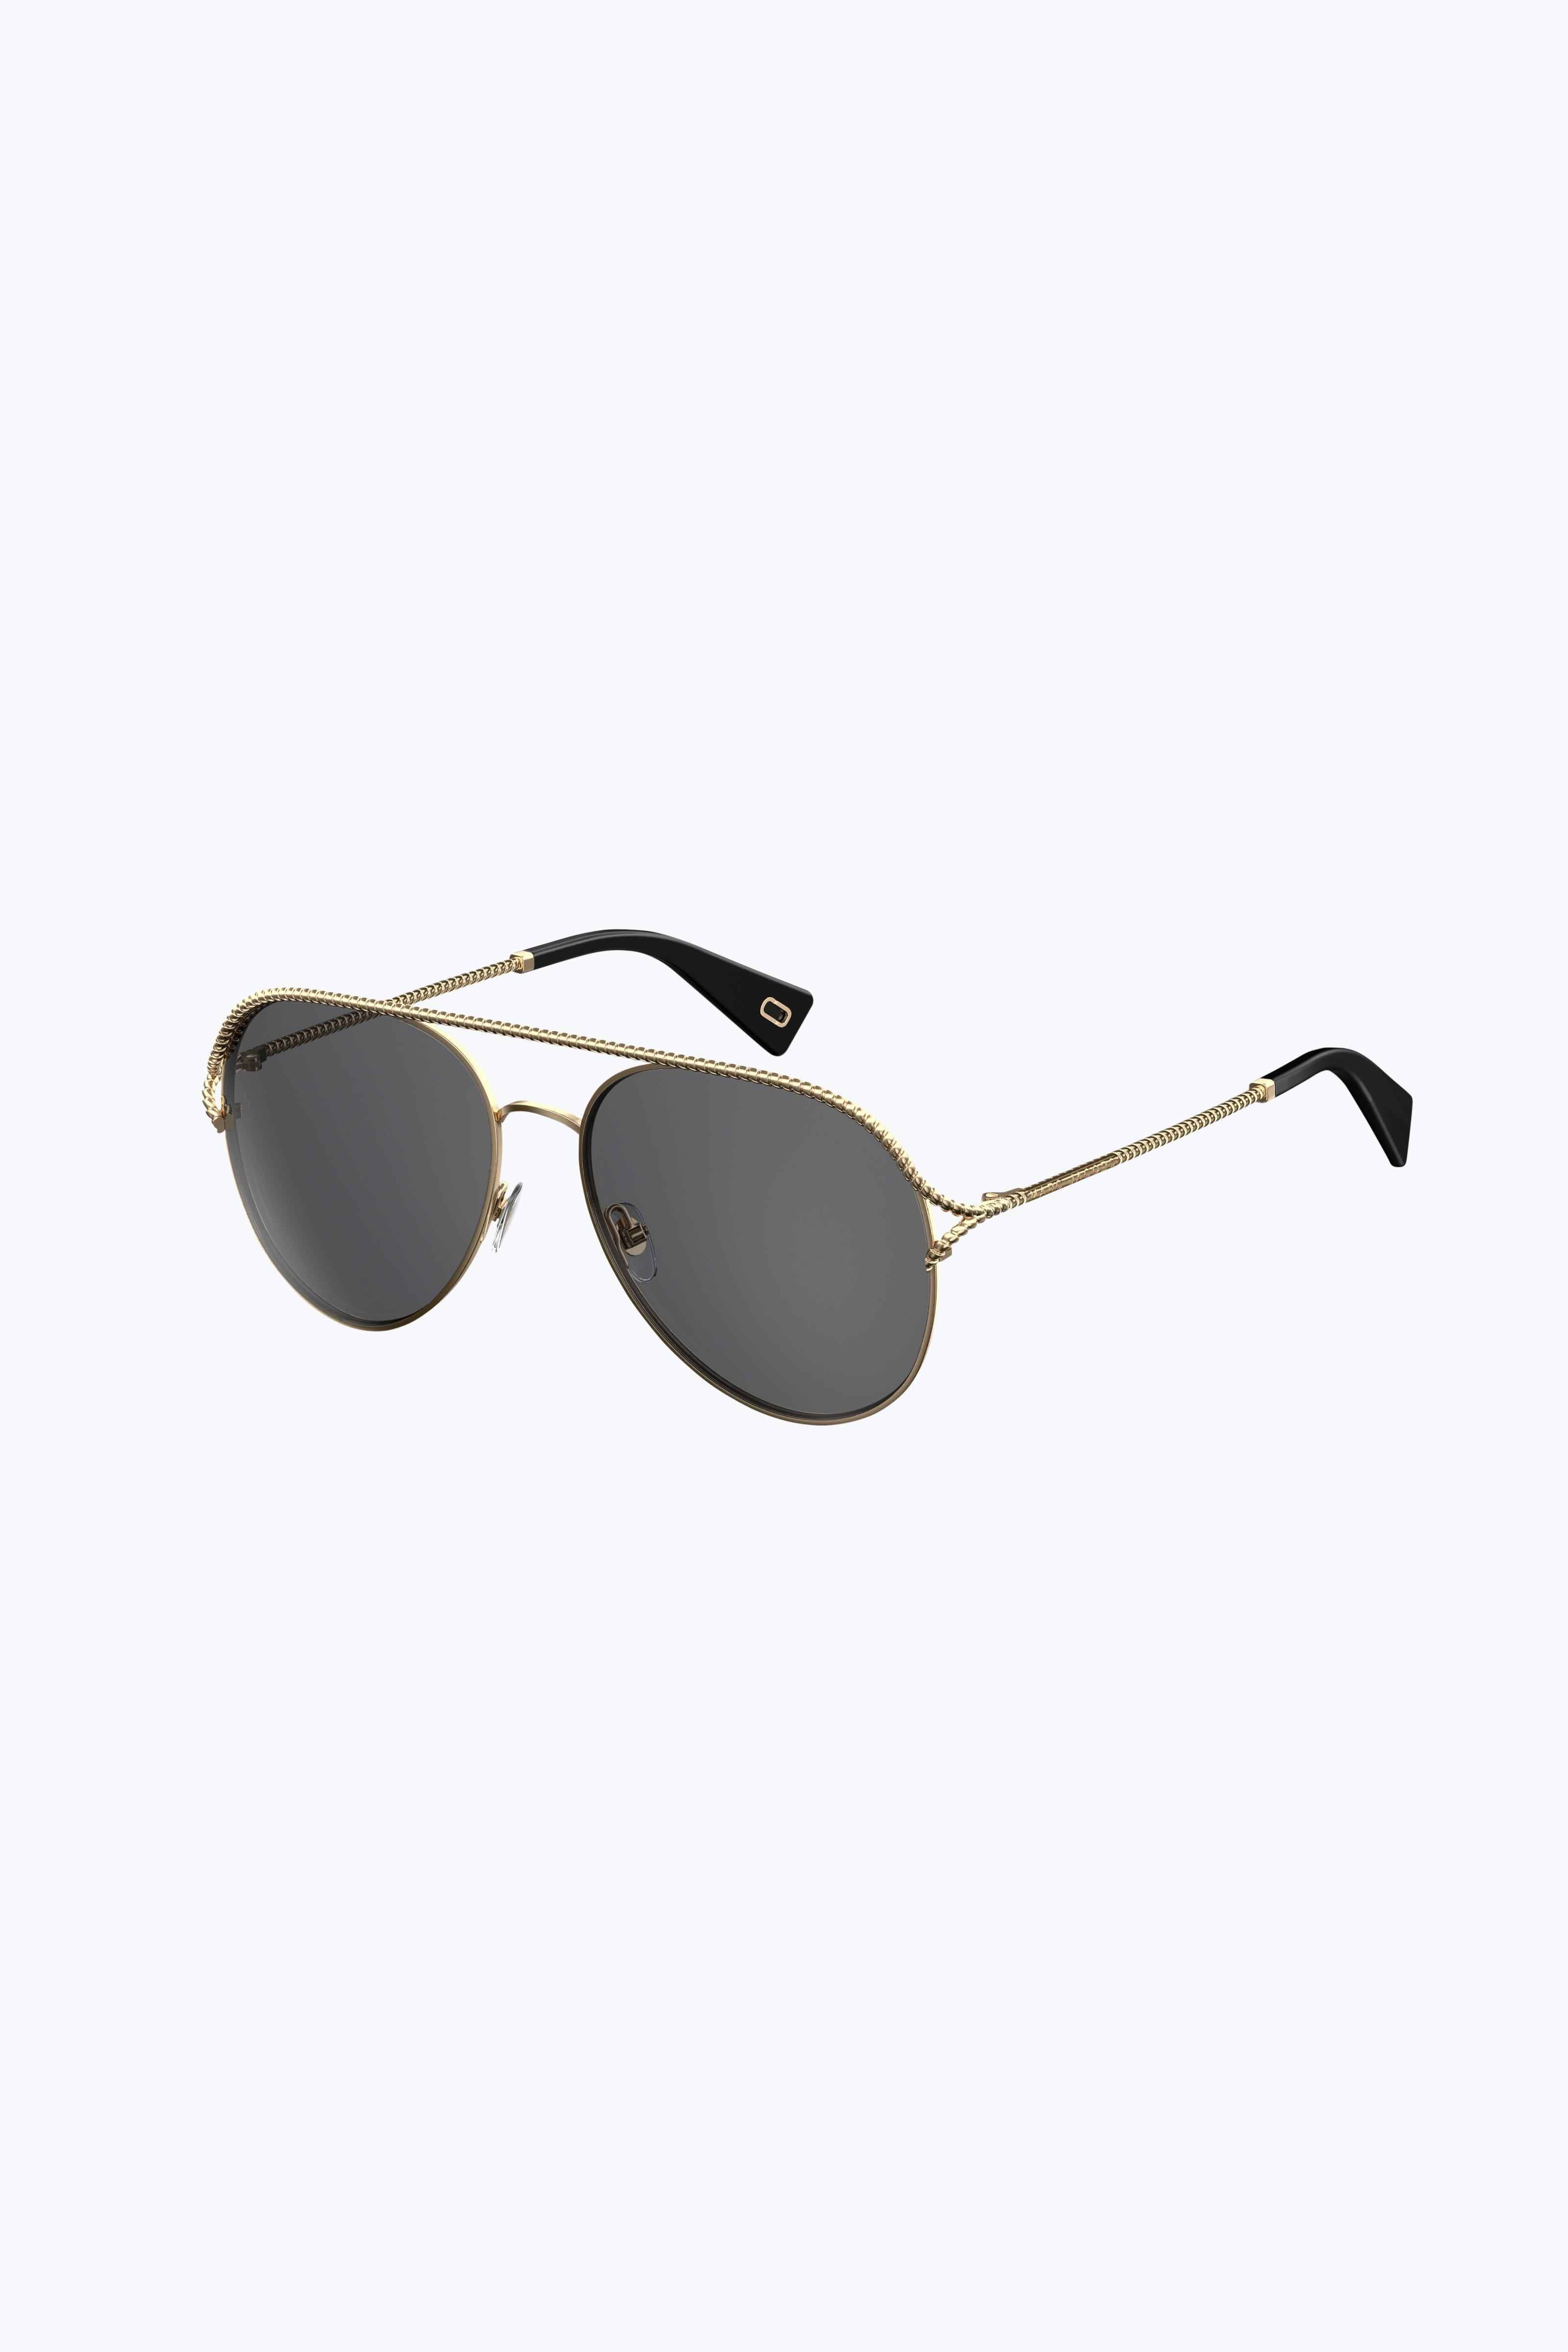 ray ban sunglasses outlet review. Black Bedroom Furniture Sets. Home Design Ideas